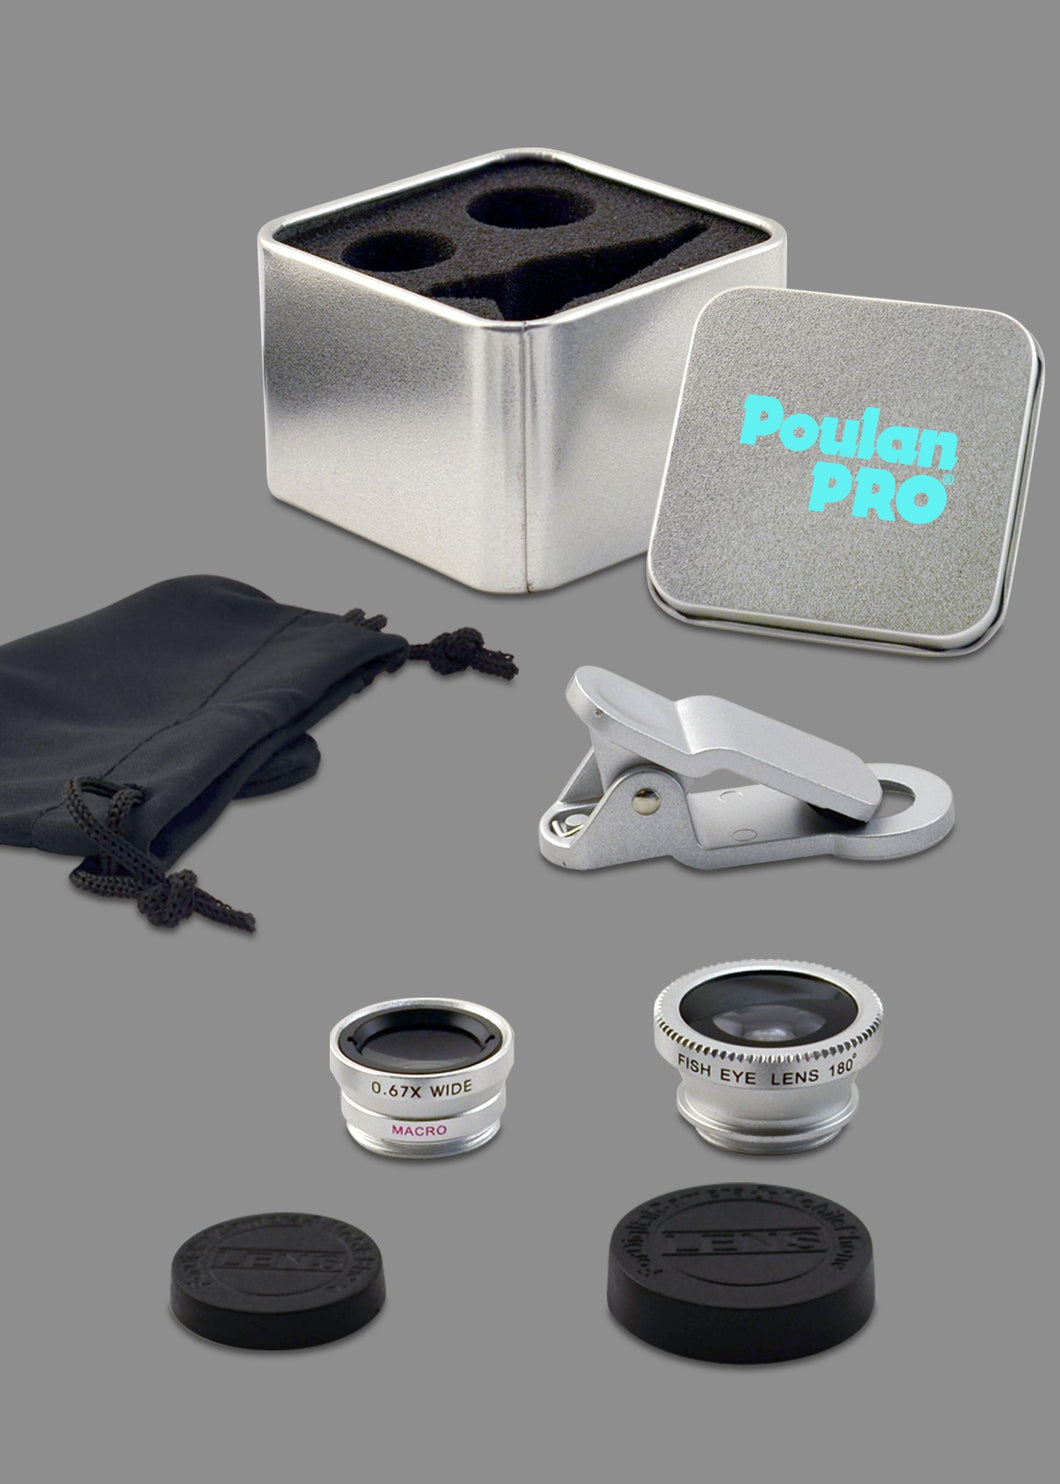 3-in-1 Macro, Wide Angle & Fish Eye Lens Set in Tin Gift Box